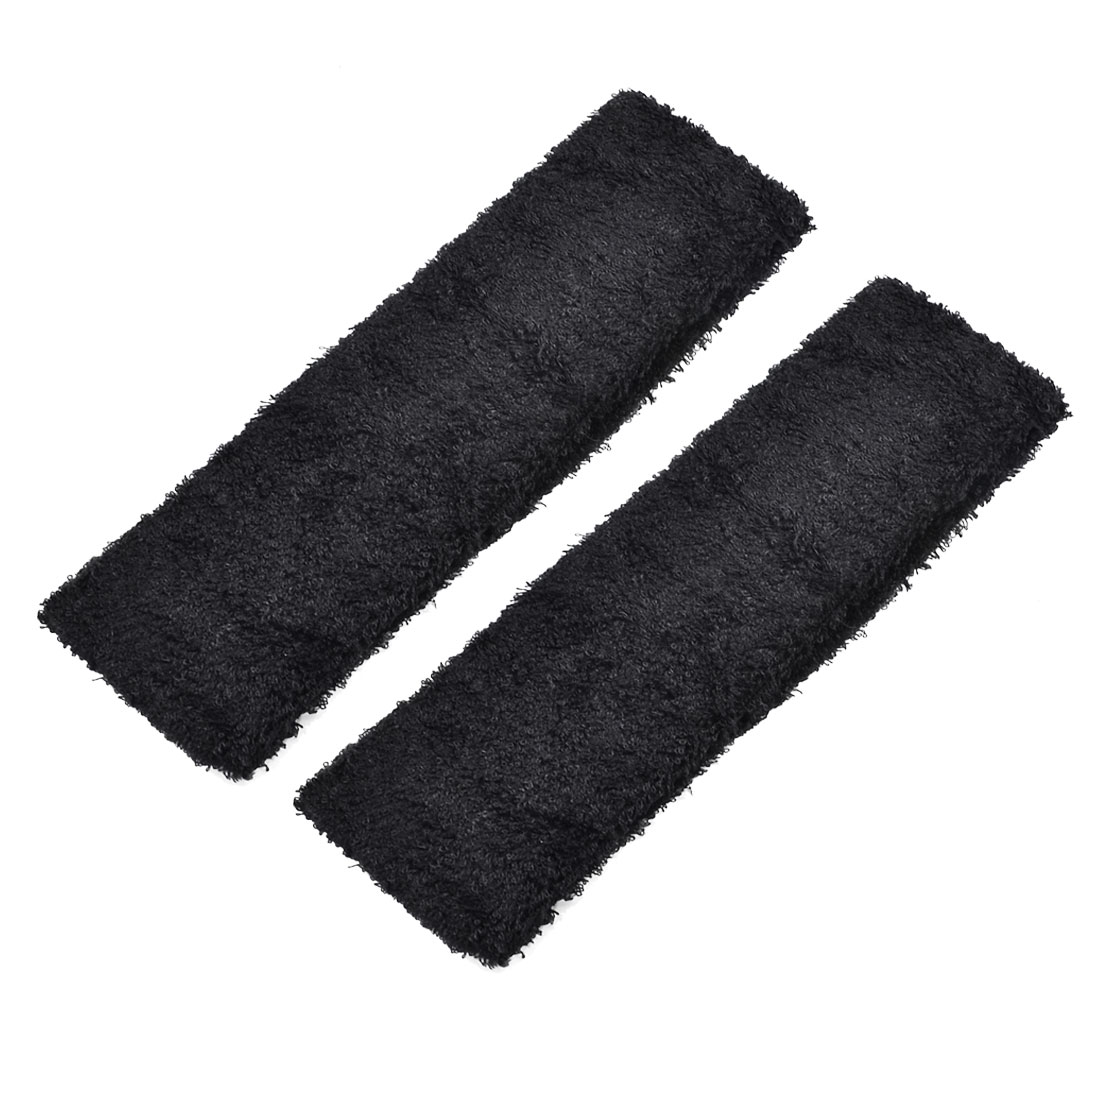 Running Yoga Exercise Workout Elastic Terry Cloth Headband Sweatband Black 2 PCS